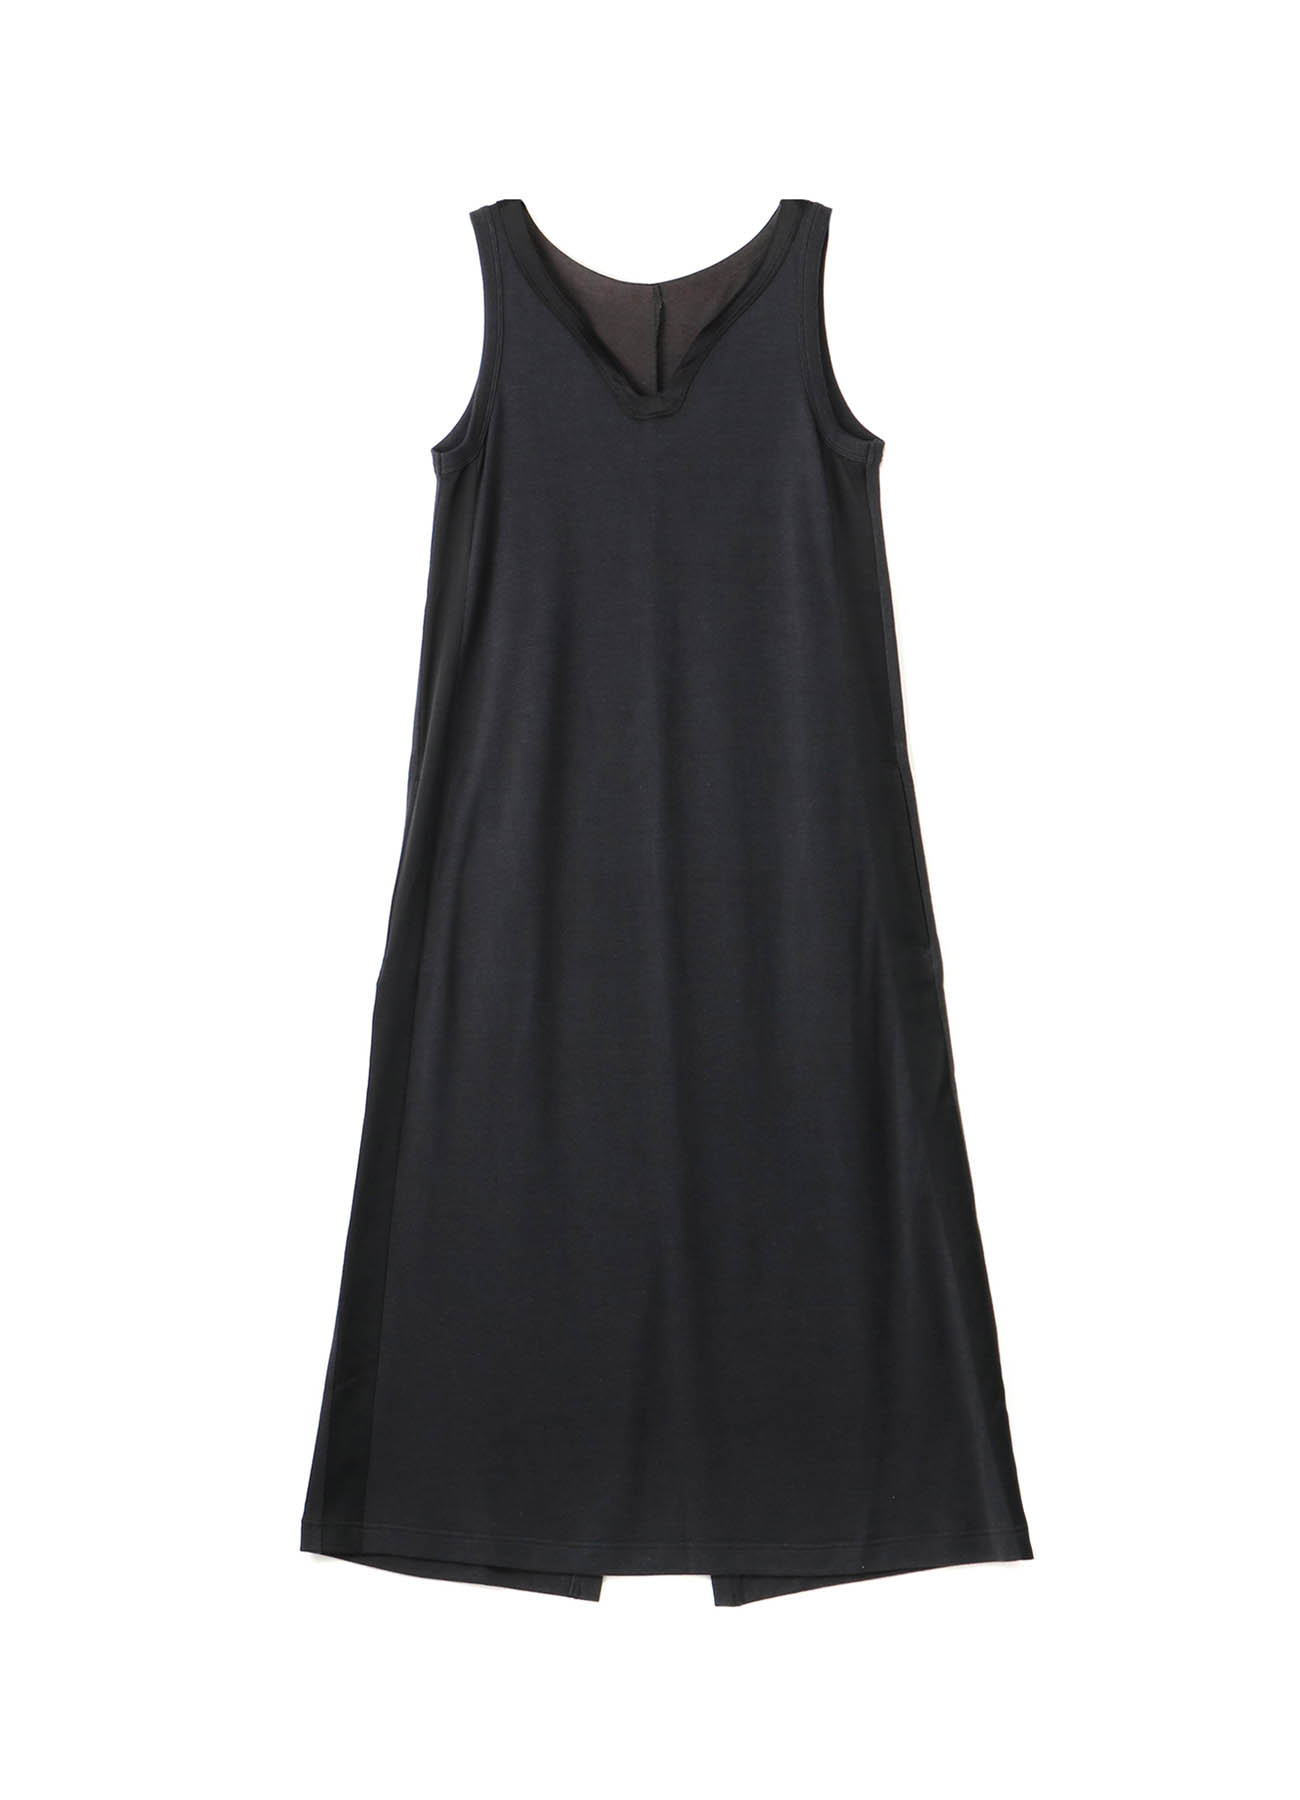 VINTAGE FOOTBALL PS SLEEVELESS DRESS